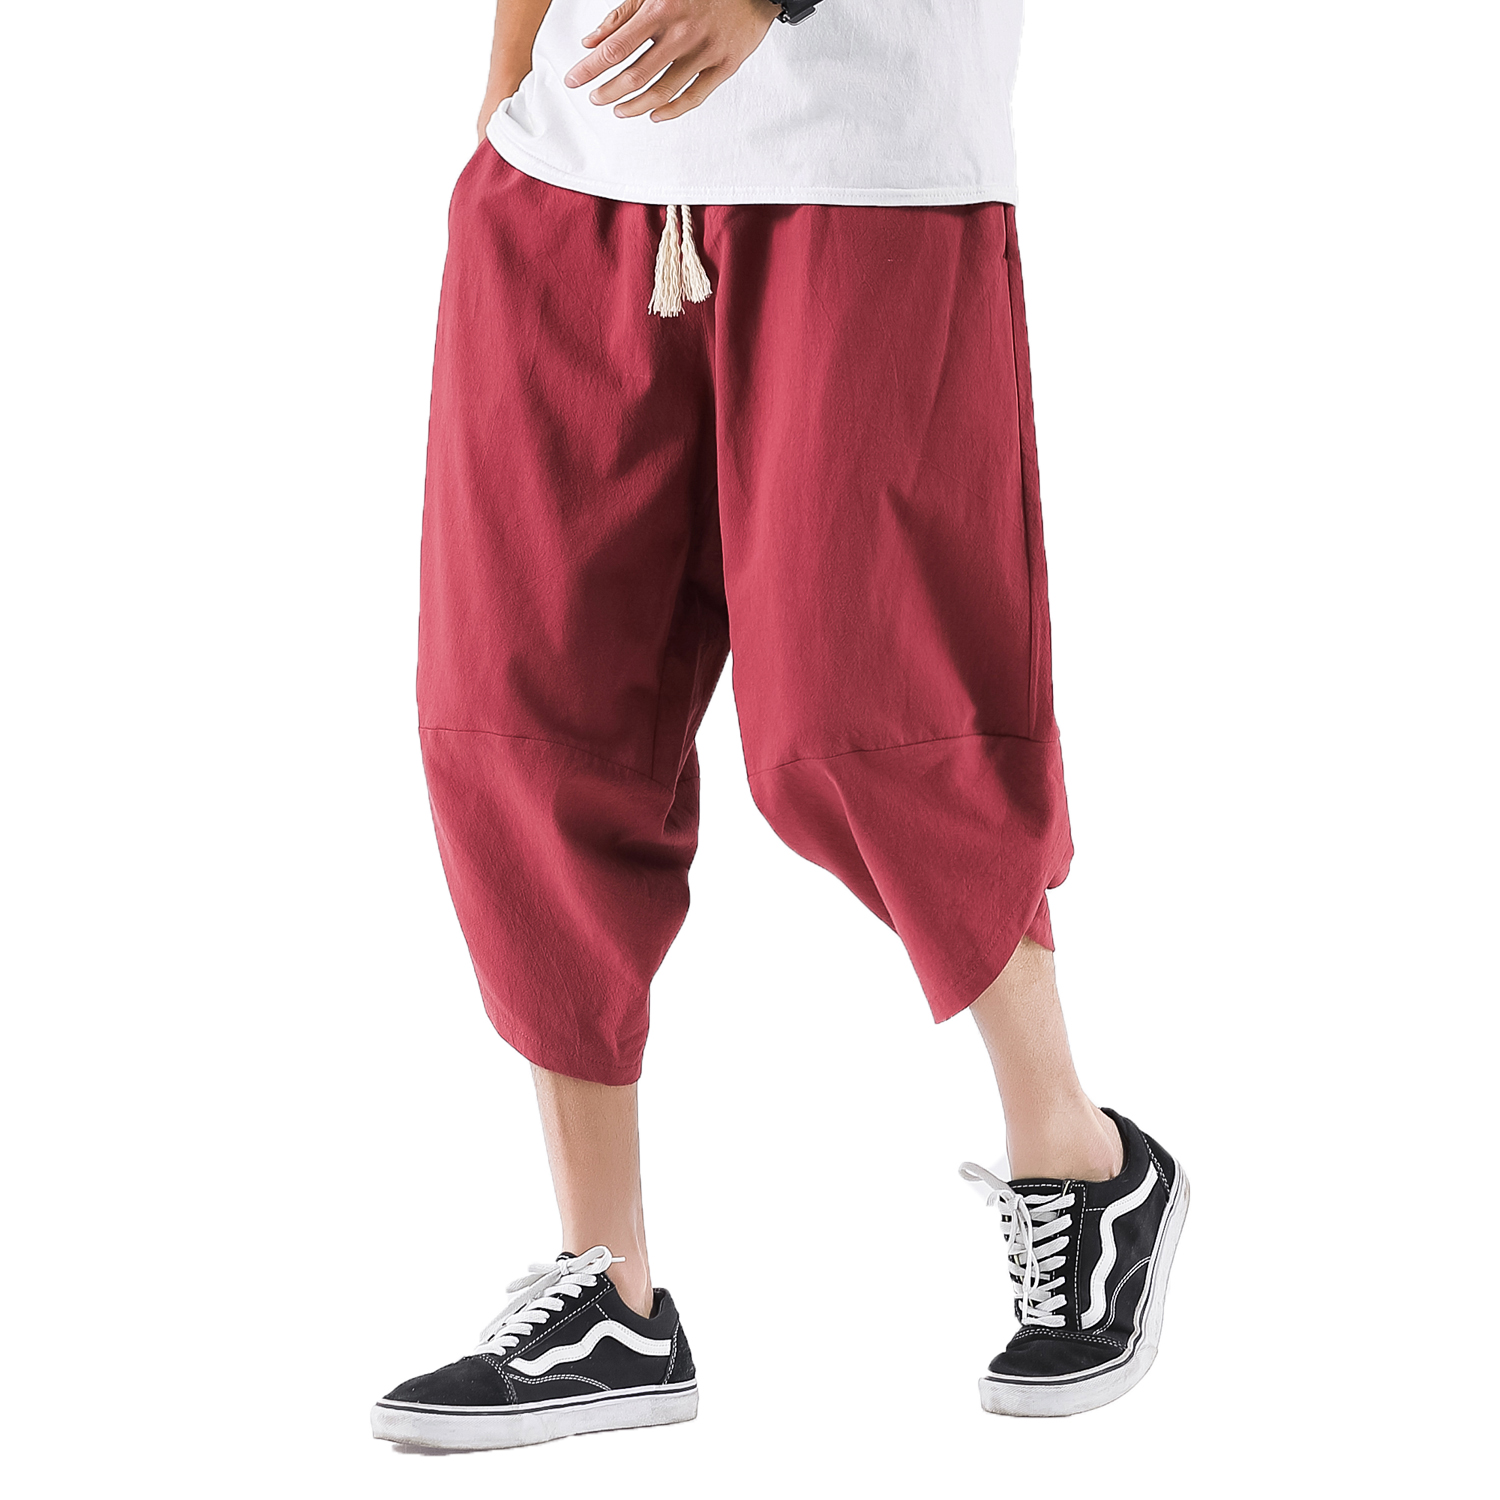 Pants Mens Trousers Male Linen Streetwear Hiphop Summer Crotch 5XL Wide Cotton Bloomers